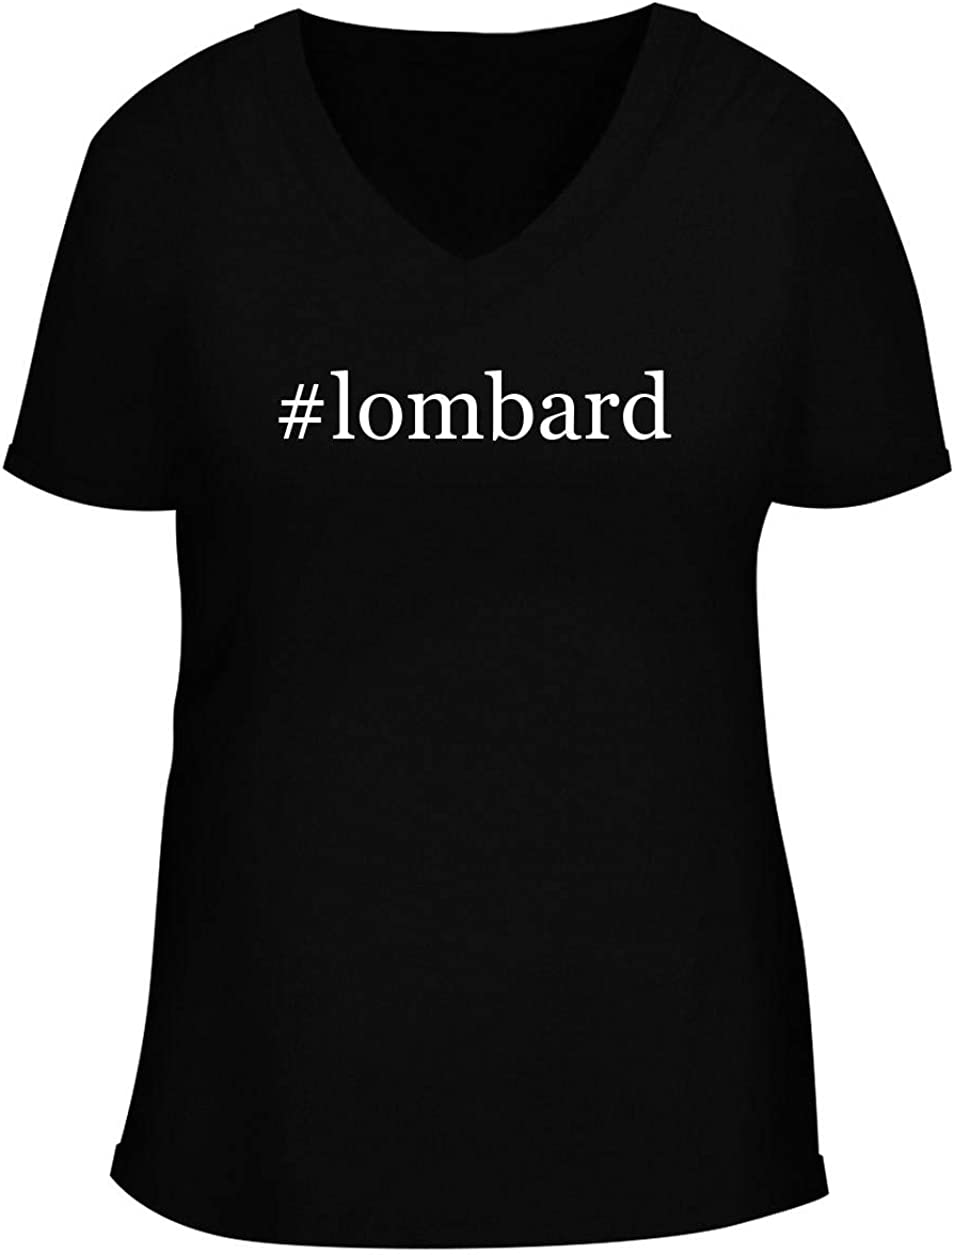 #lombard - Women's Soft & Comfortable Hashtag Deep V-Neck T-Shirt